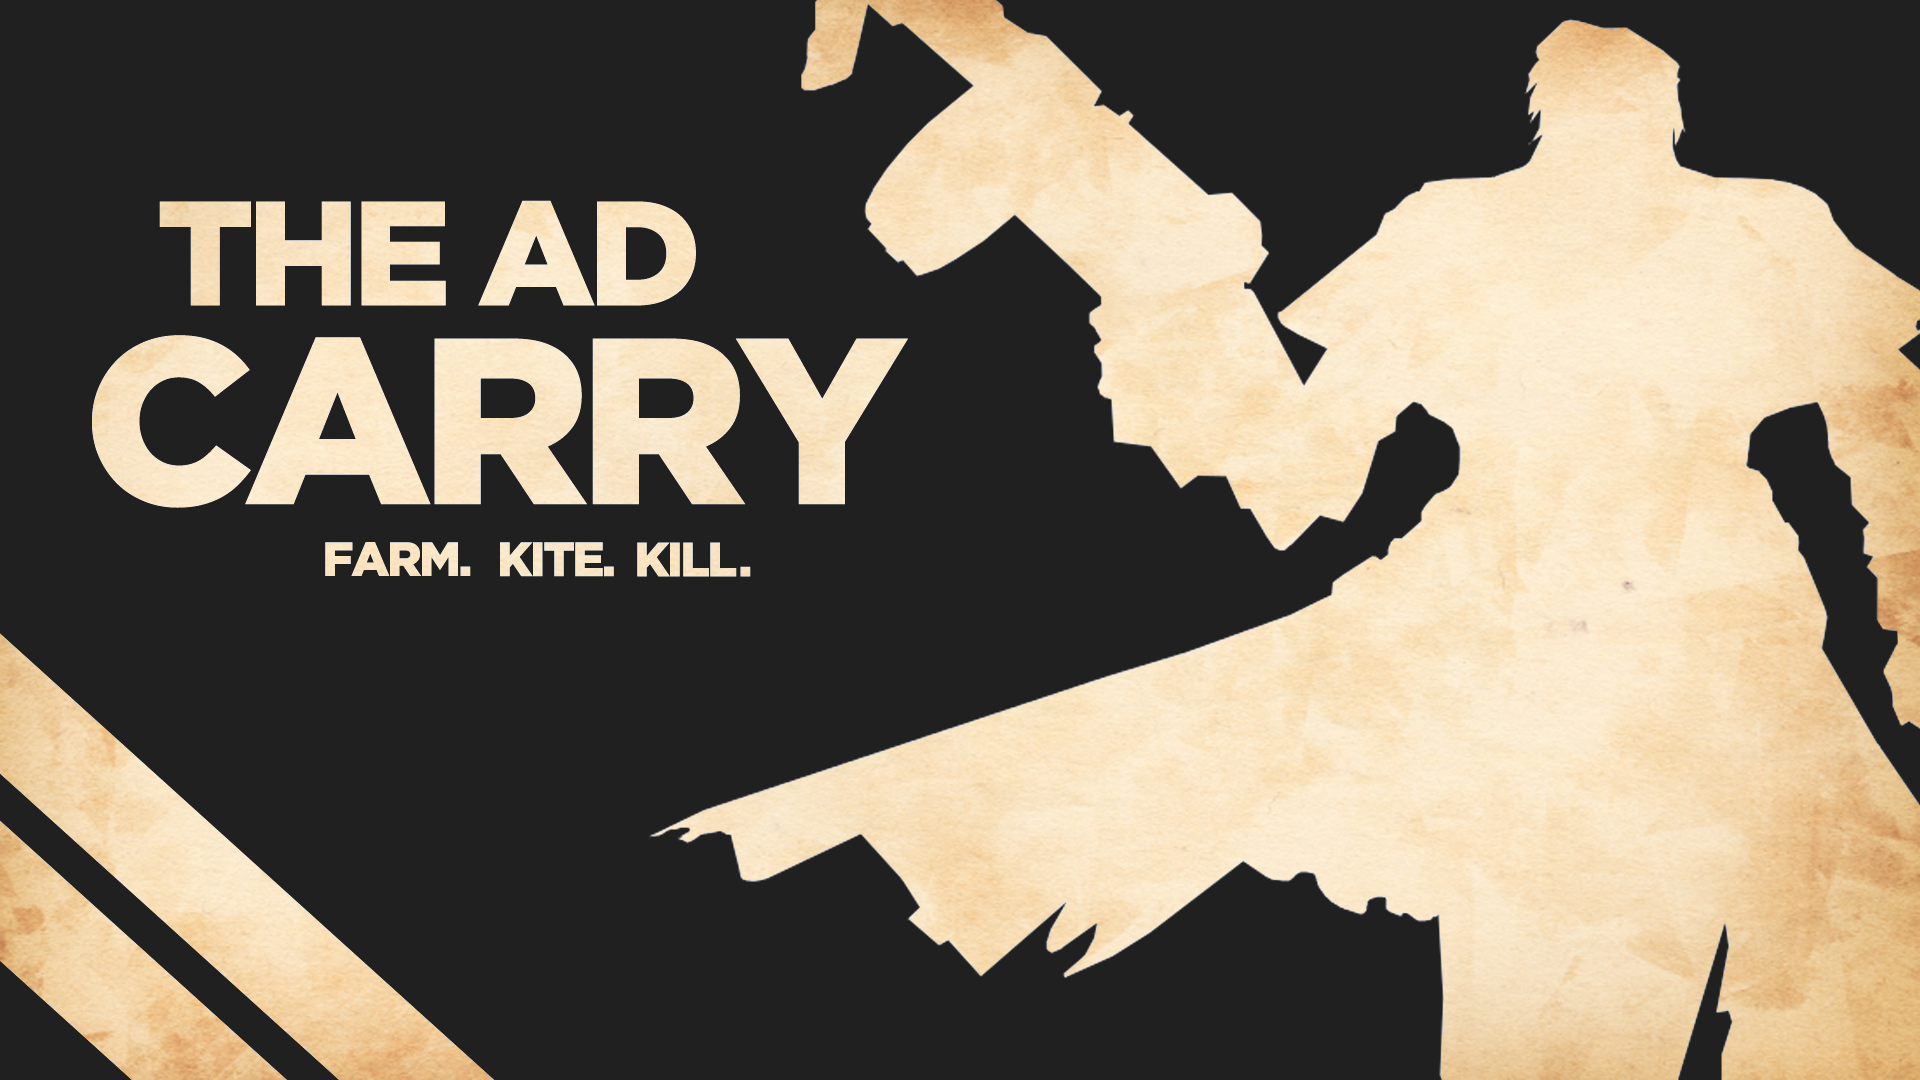 The AD Carry wallpaper